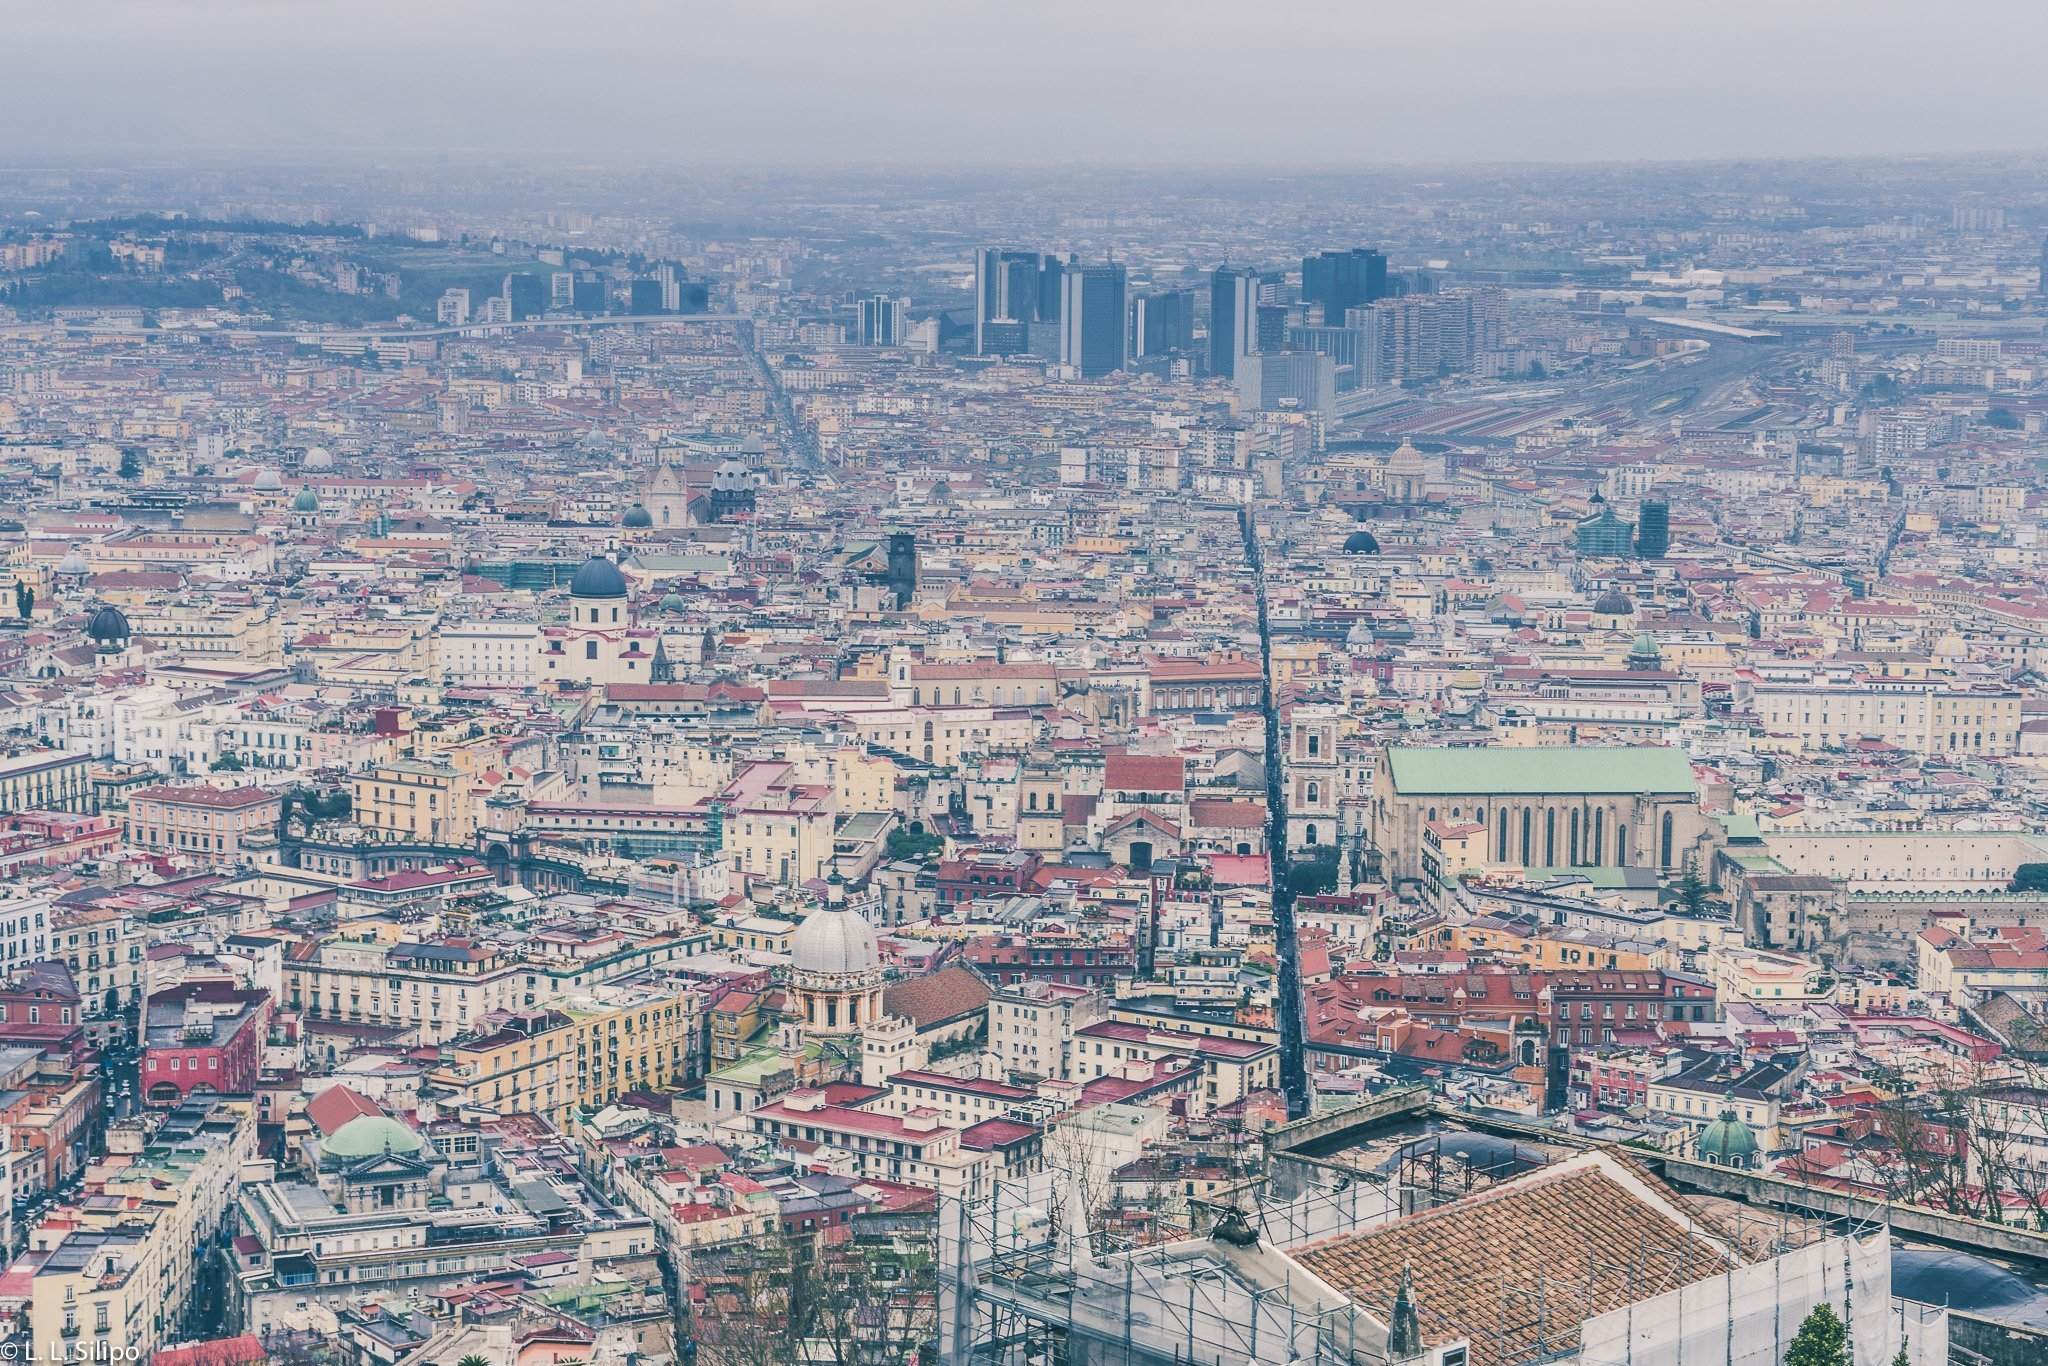 Napoli, Spaccanapoli, aerial, architecture, building, campania, city, cityscape, europe, european, famous, historic, historical, italian, italy, landmark, landscape, mediterranean, naples, naples italy, neapolitan, old, old town, overview, panorama, panoramic, piazza, quartieri, san martino, scenic, skyline, skyscraper, spagnoli, street, tourism, town, travel, urban, vesuvius, view, view from above, volcano